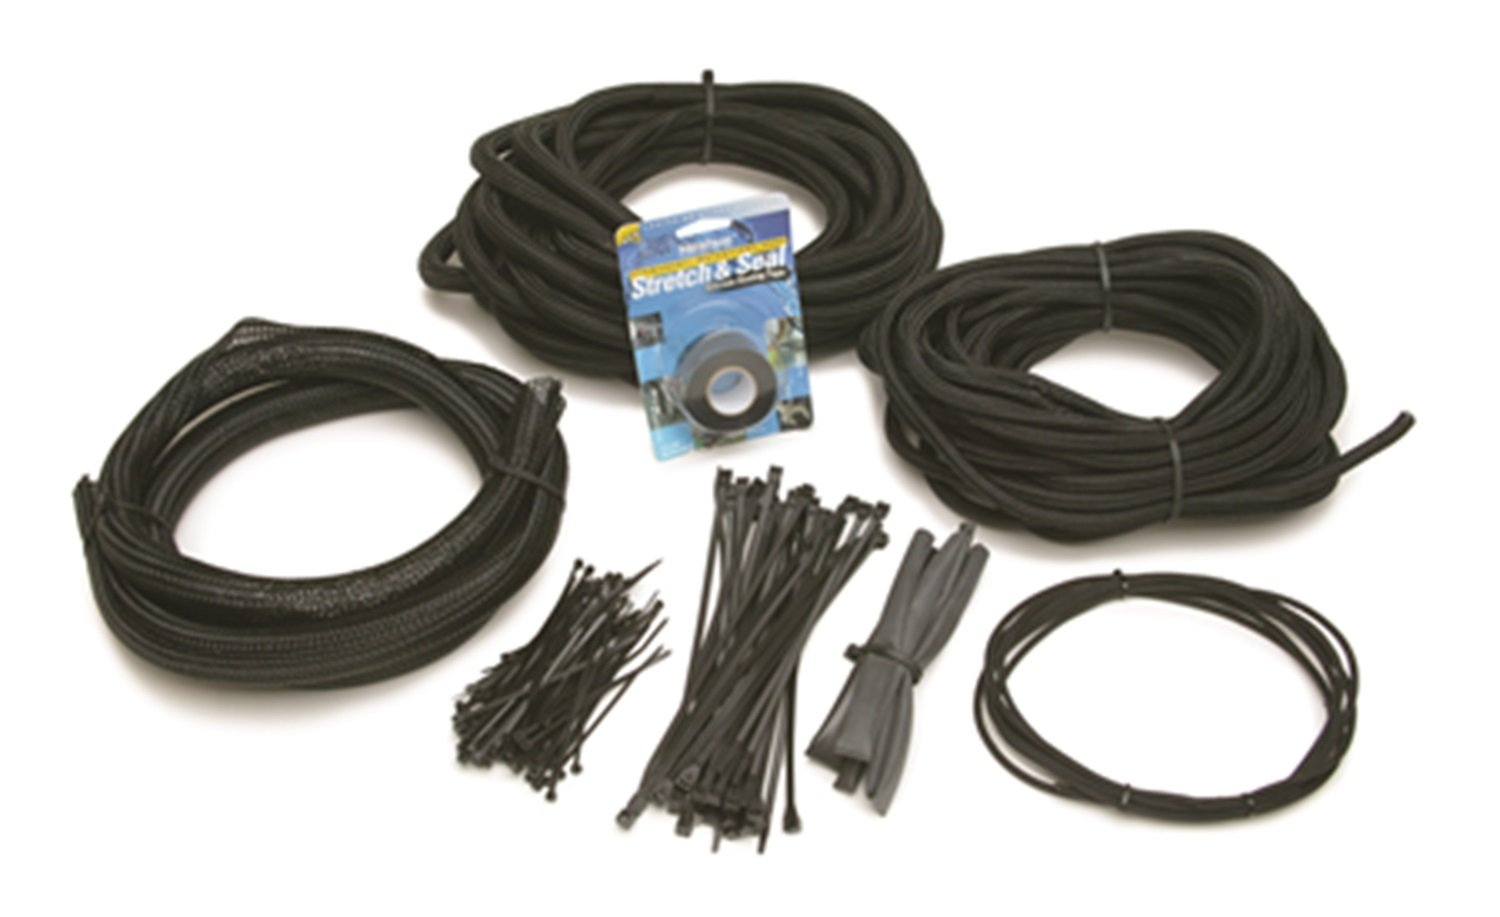 61KfhP ZlhL._SL1500_ amazon com painless wiring 70920 power braid chassis kit automotive painless wiring harness rebate at sewacar.co